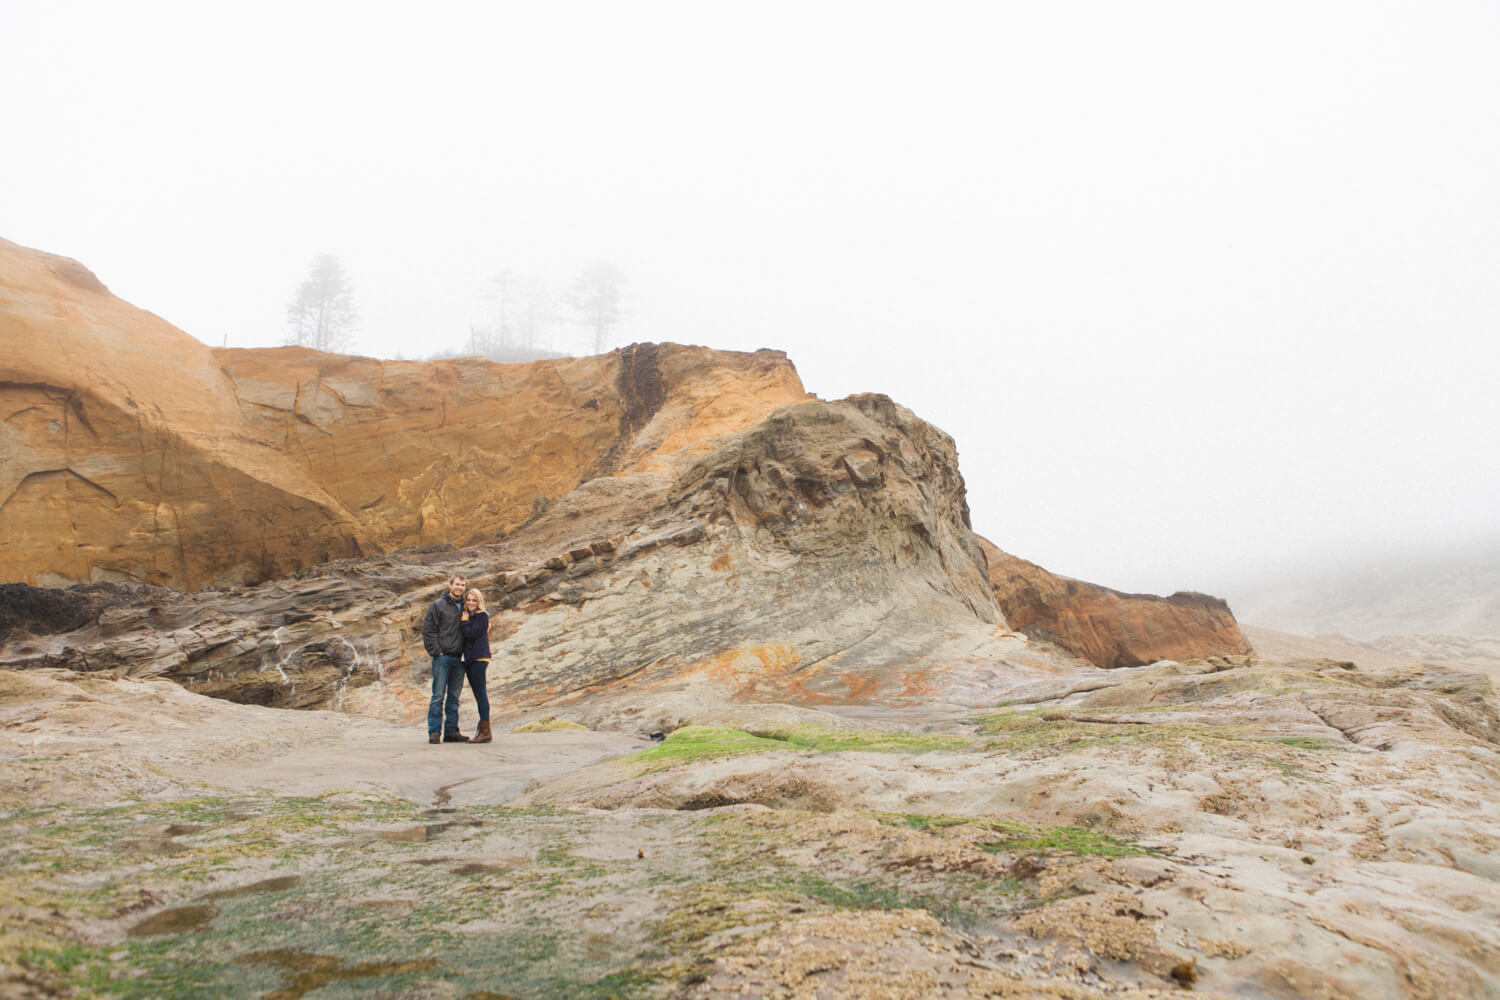 engagement-photography-oregon-coast-cape-kiwanda-shelley-marie-photo-C004.jpg